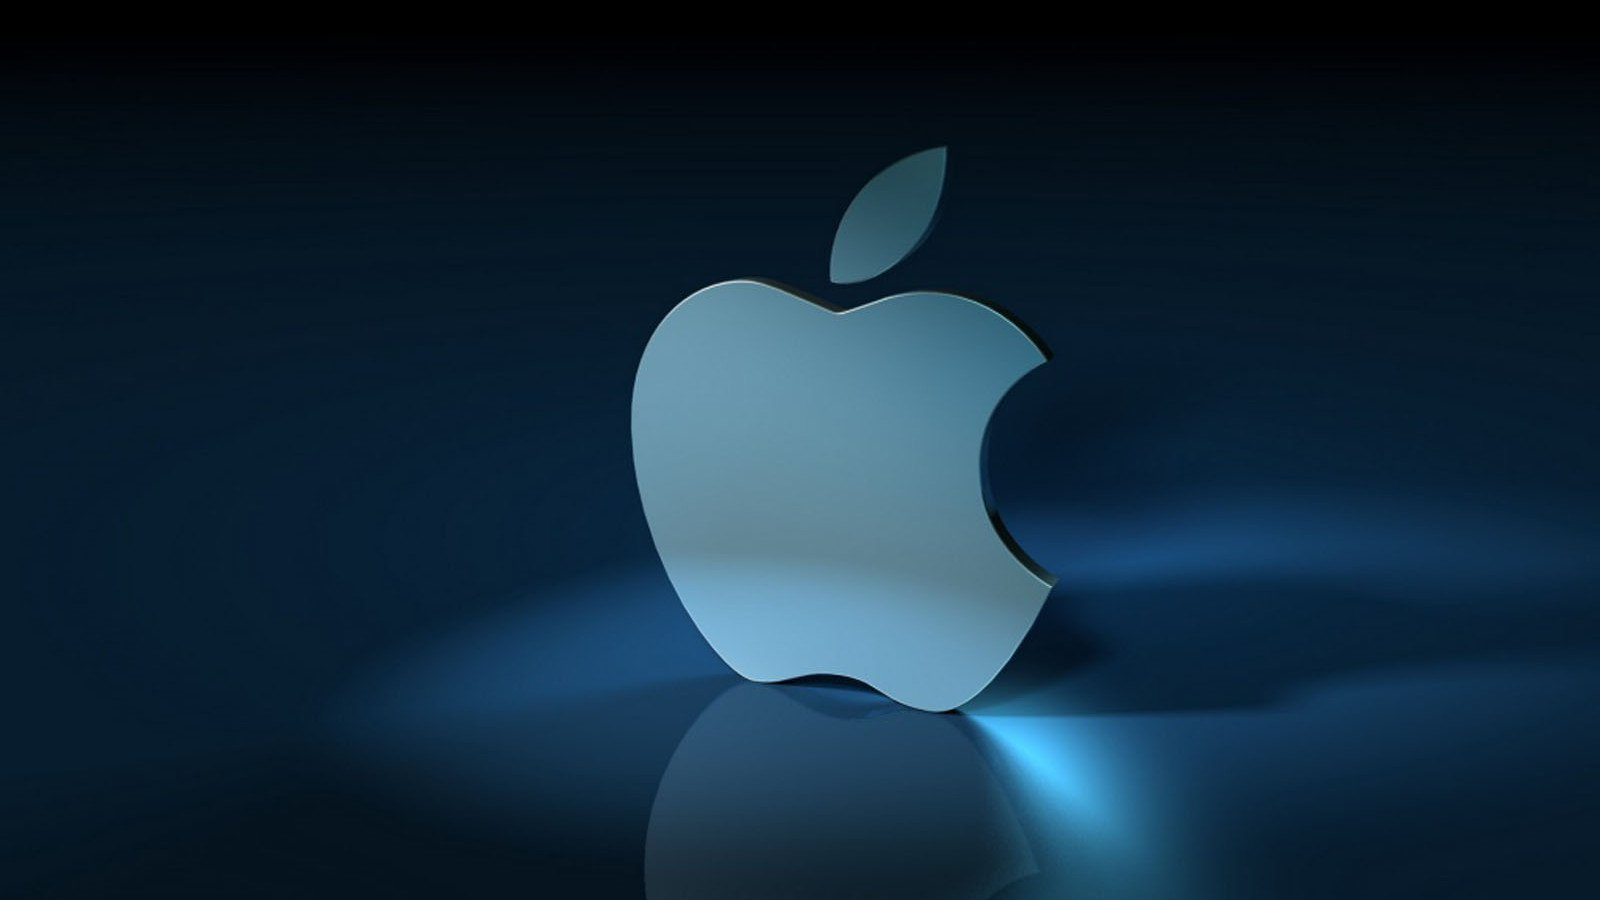 Apple will hold a presentation on March 27